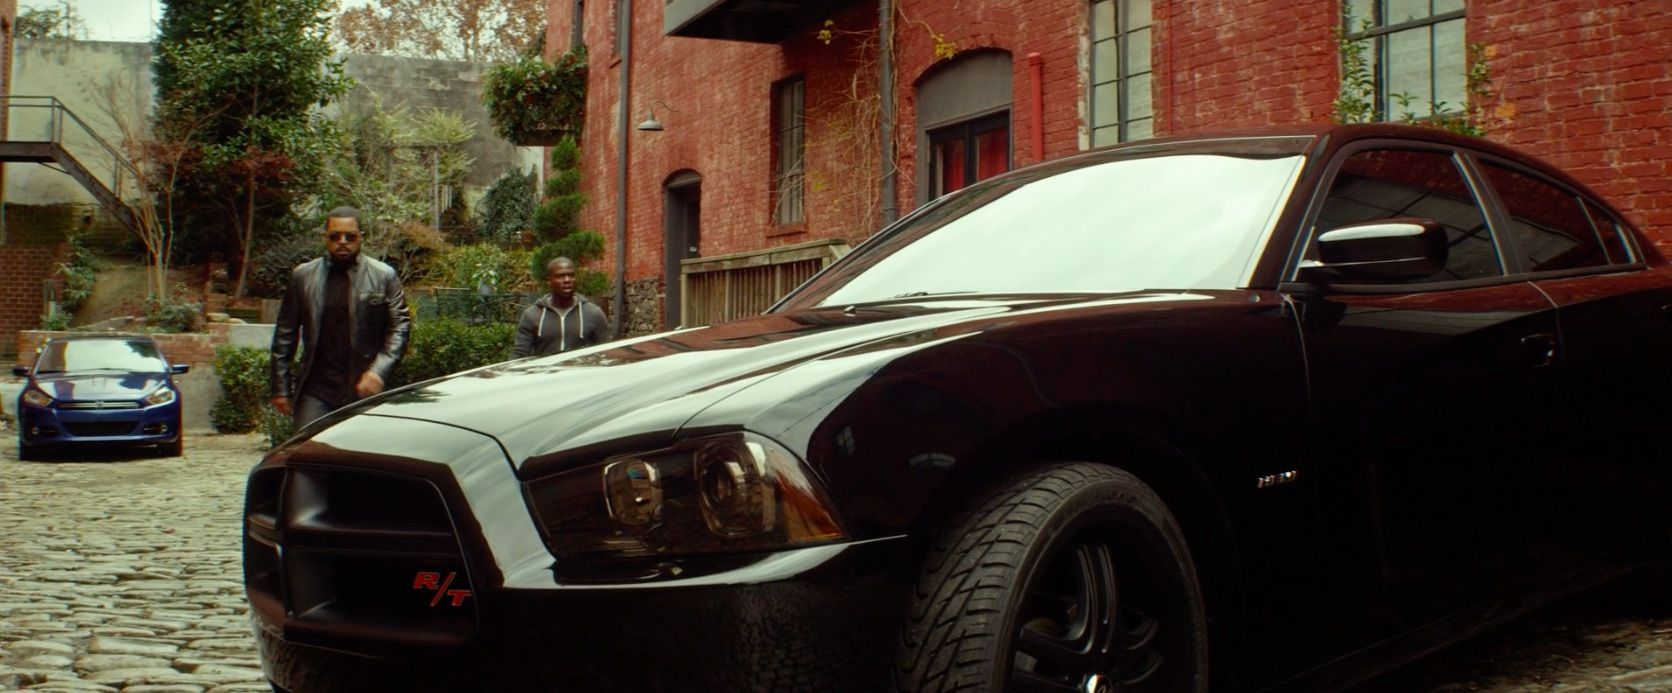 Dodge Charger SRT-8 (2012) driven by Ice Cube in RIDE ALONG (2013) @Dodge | movies | Pinterest ...